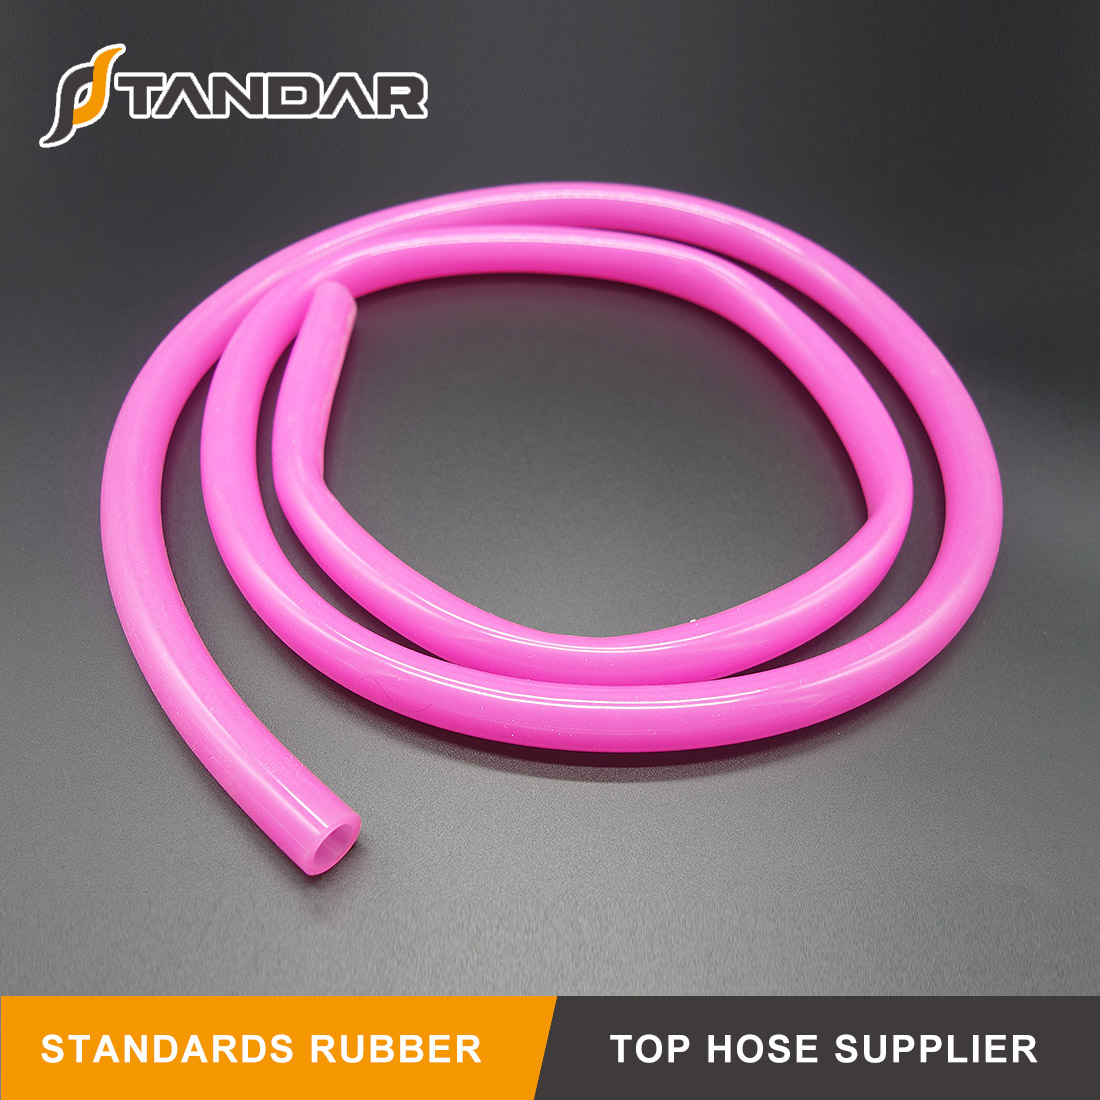 High Pressure flexible platinum cured thin wall reinforced FDA Food Grade Silicone vacuum Hose